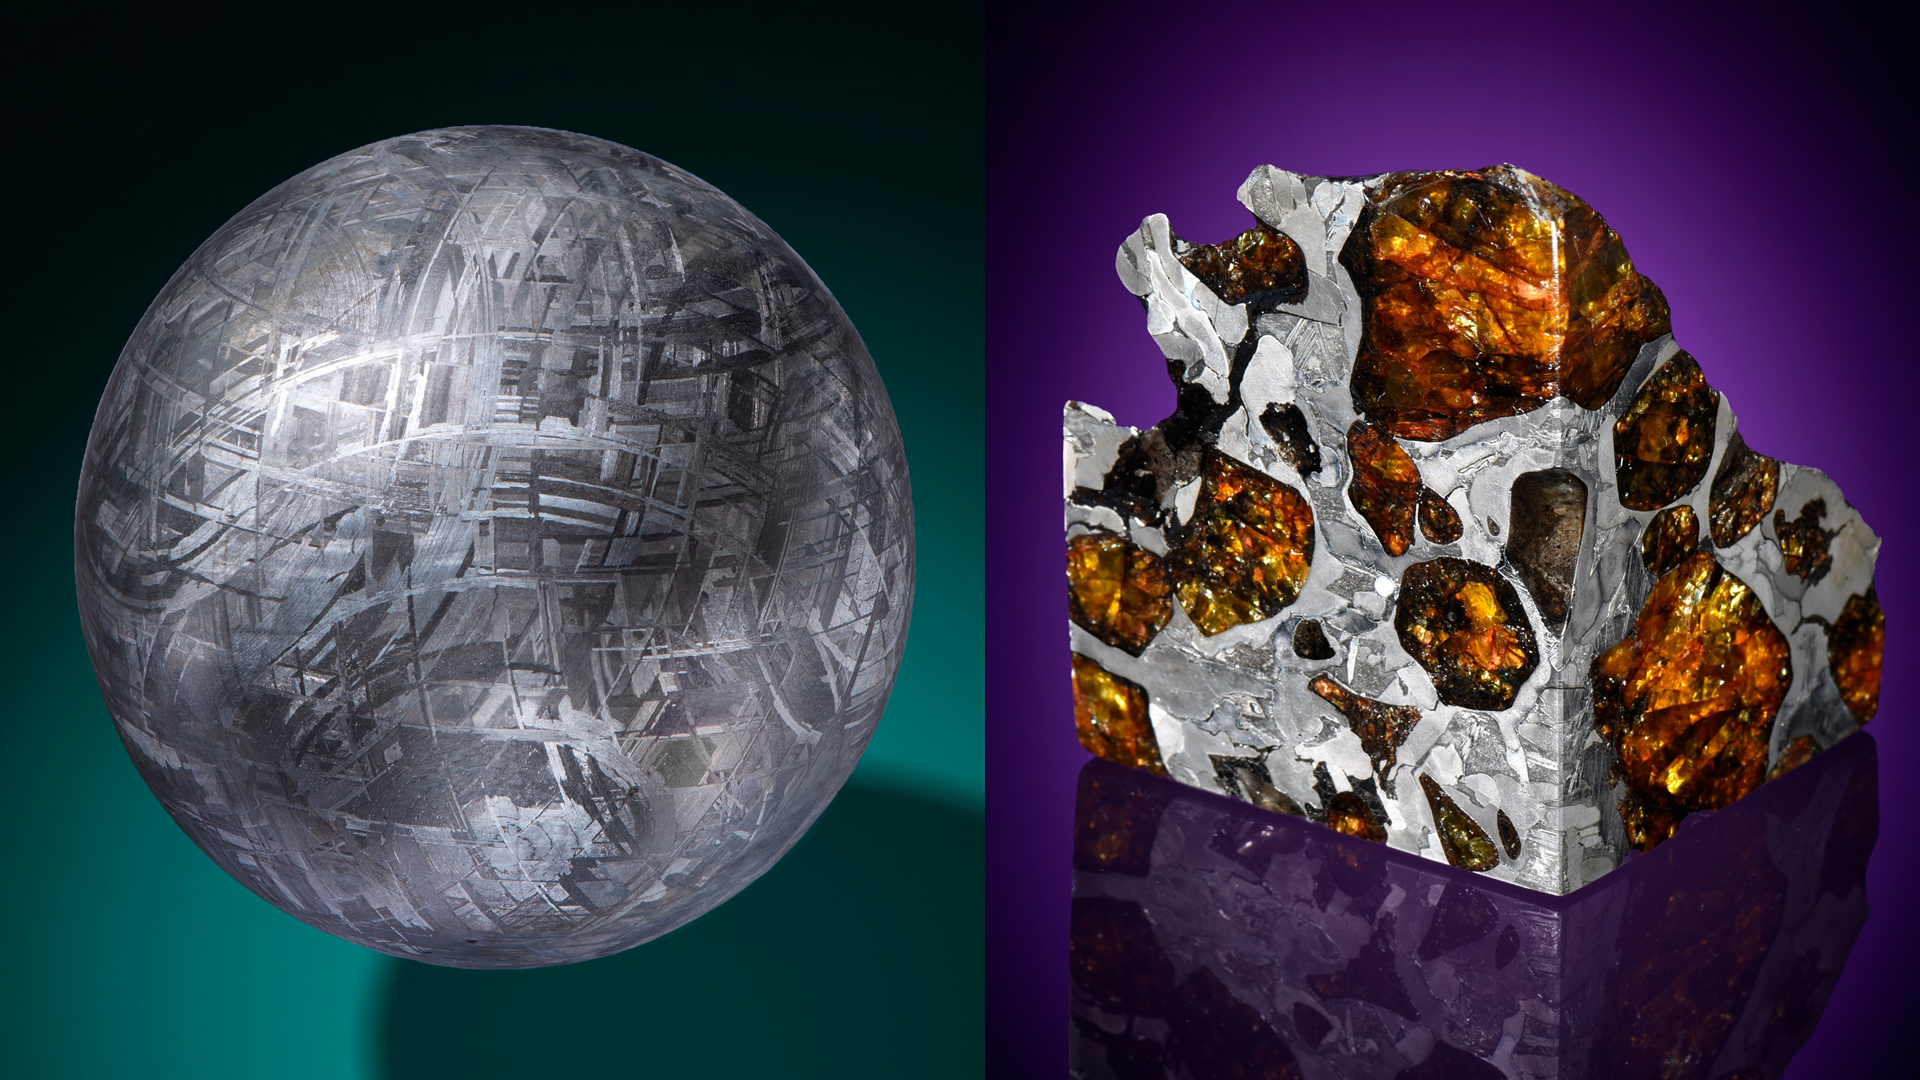 The spherical Muonionalusta meteorite and the dazzling Fukang meteorite are two of the objects in the online auction.